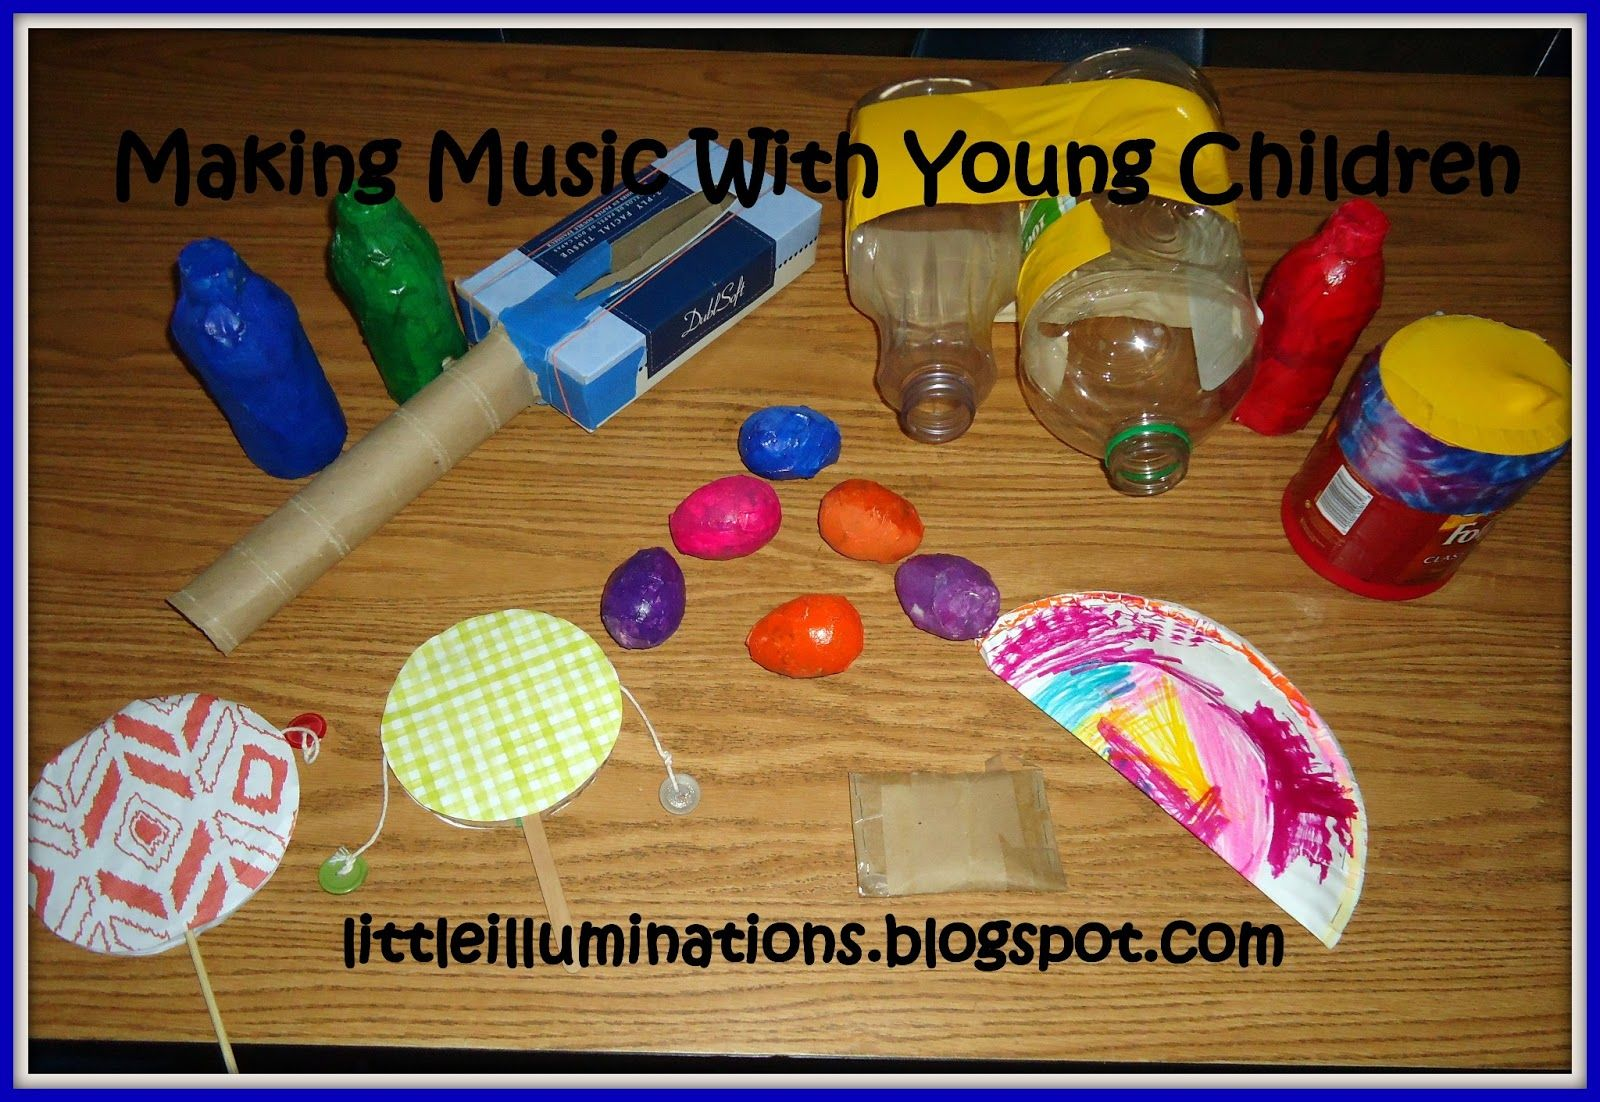 Create Your Own Instrument Worksheet : Musical instruments worksheets for preschoolers google